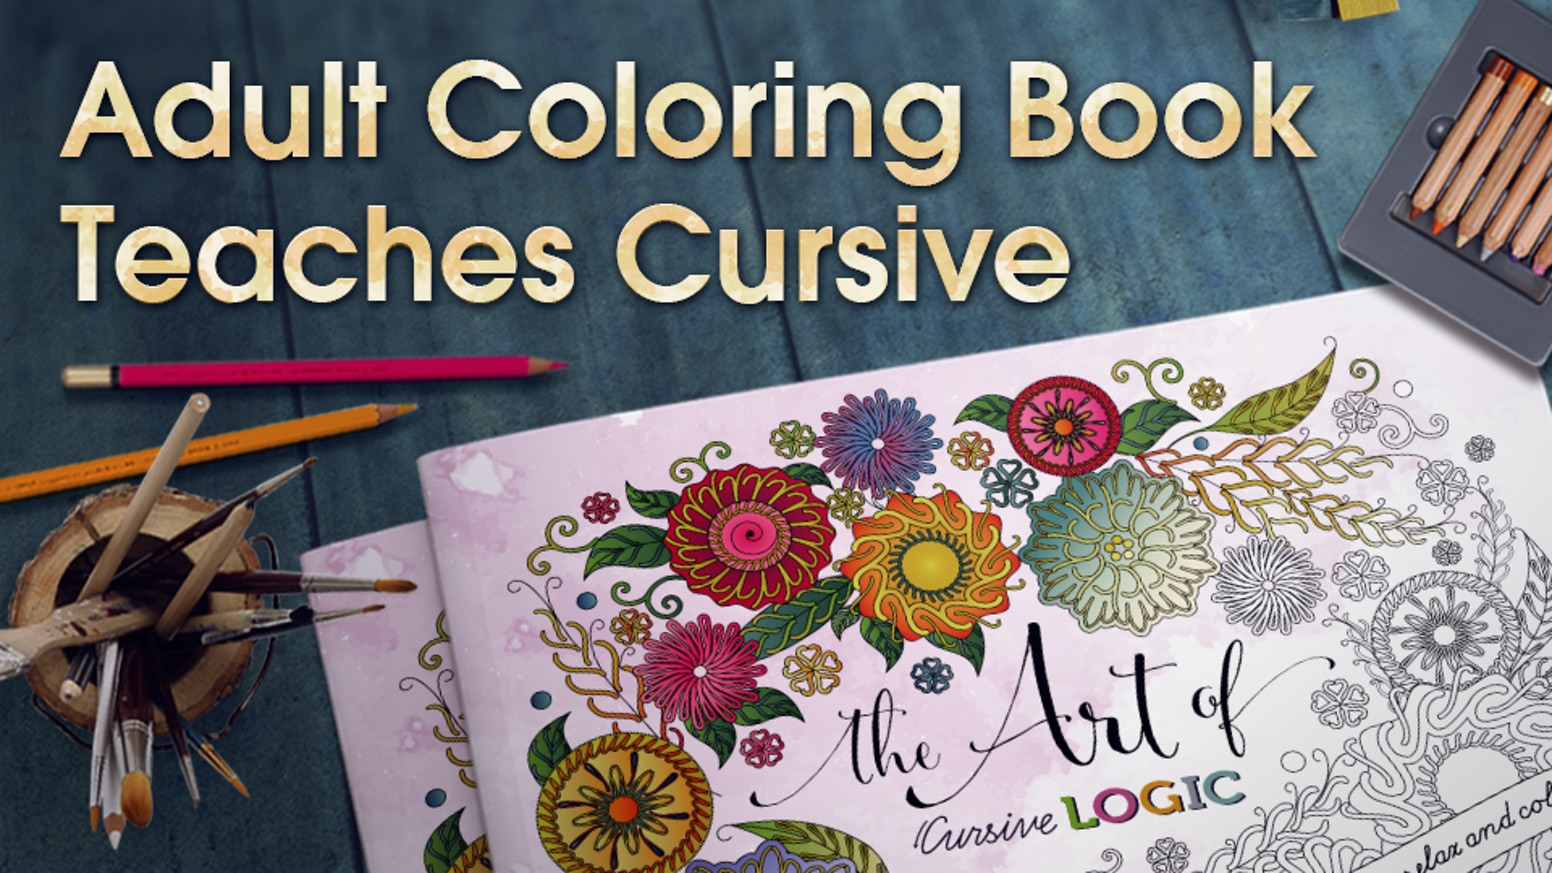 The art of color book - A Revolutionary Handwriting Instruction Method Artfully Woven Into A Relaxing Adult Coloring Book Use